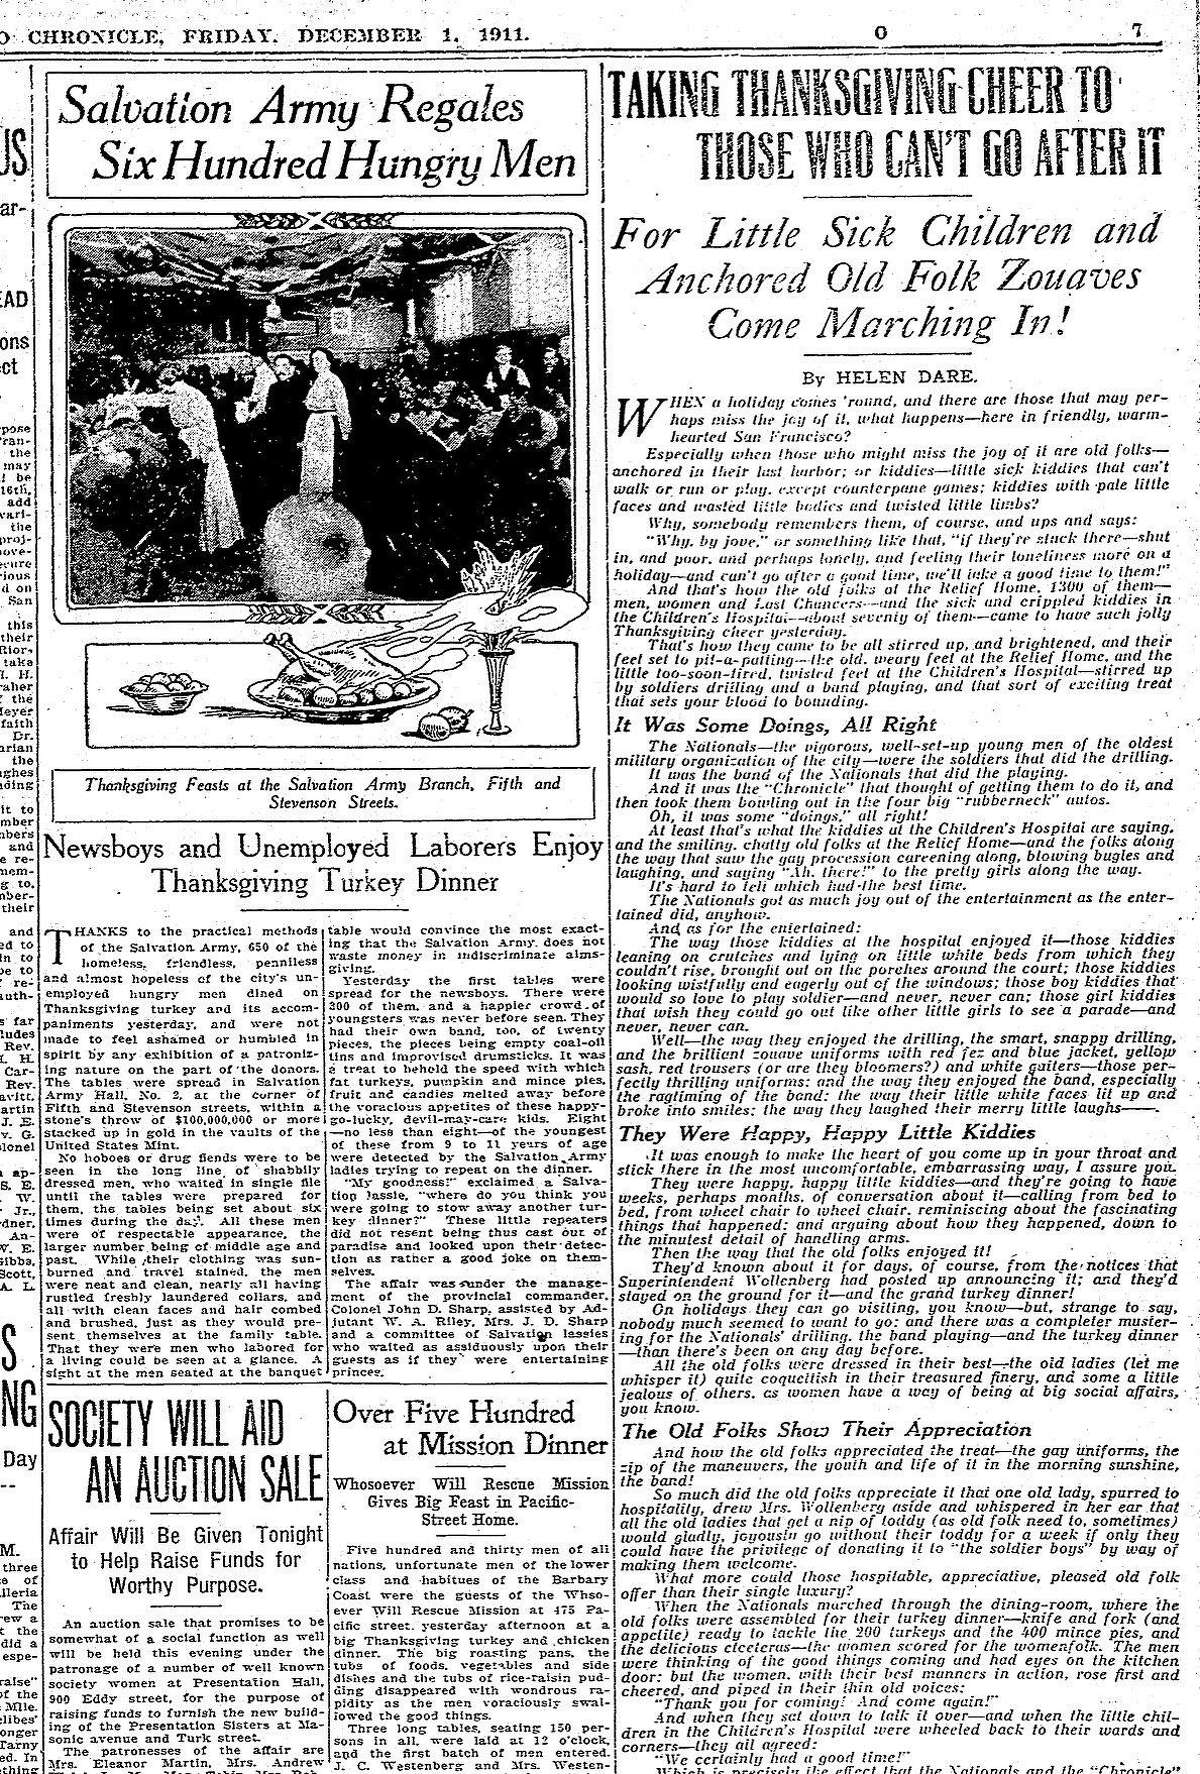 The Chronicle December 1, 1911 coverage of people in San Francisco and the Bay Area celebrating Thanksgiving